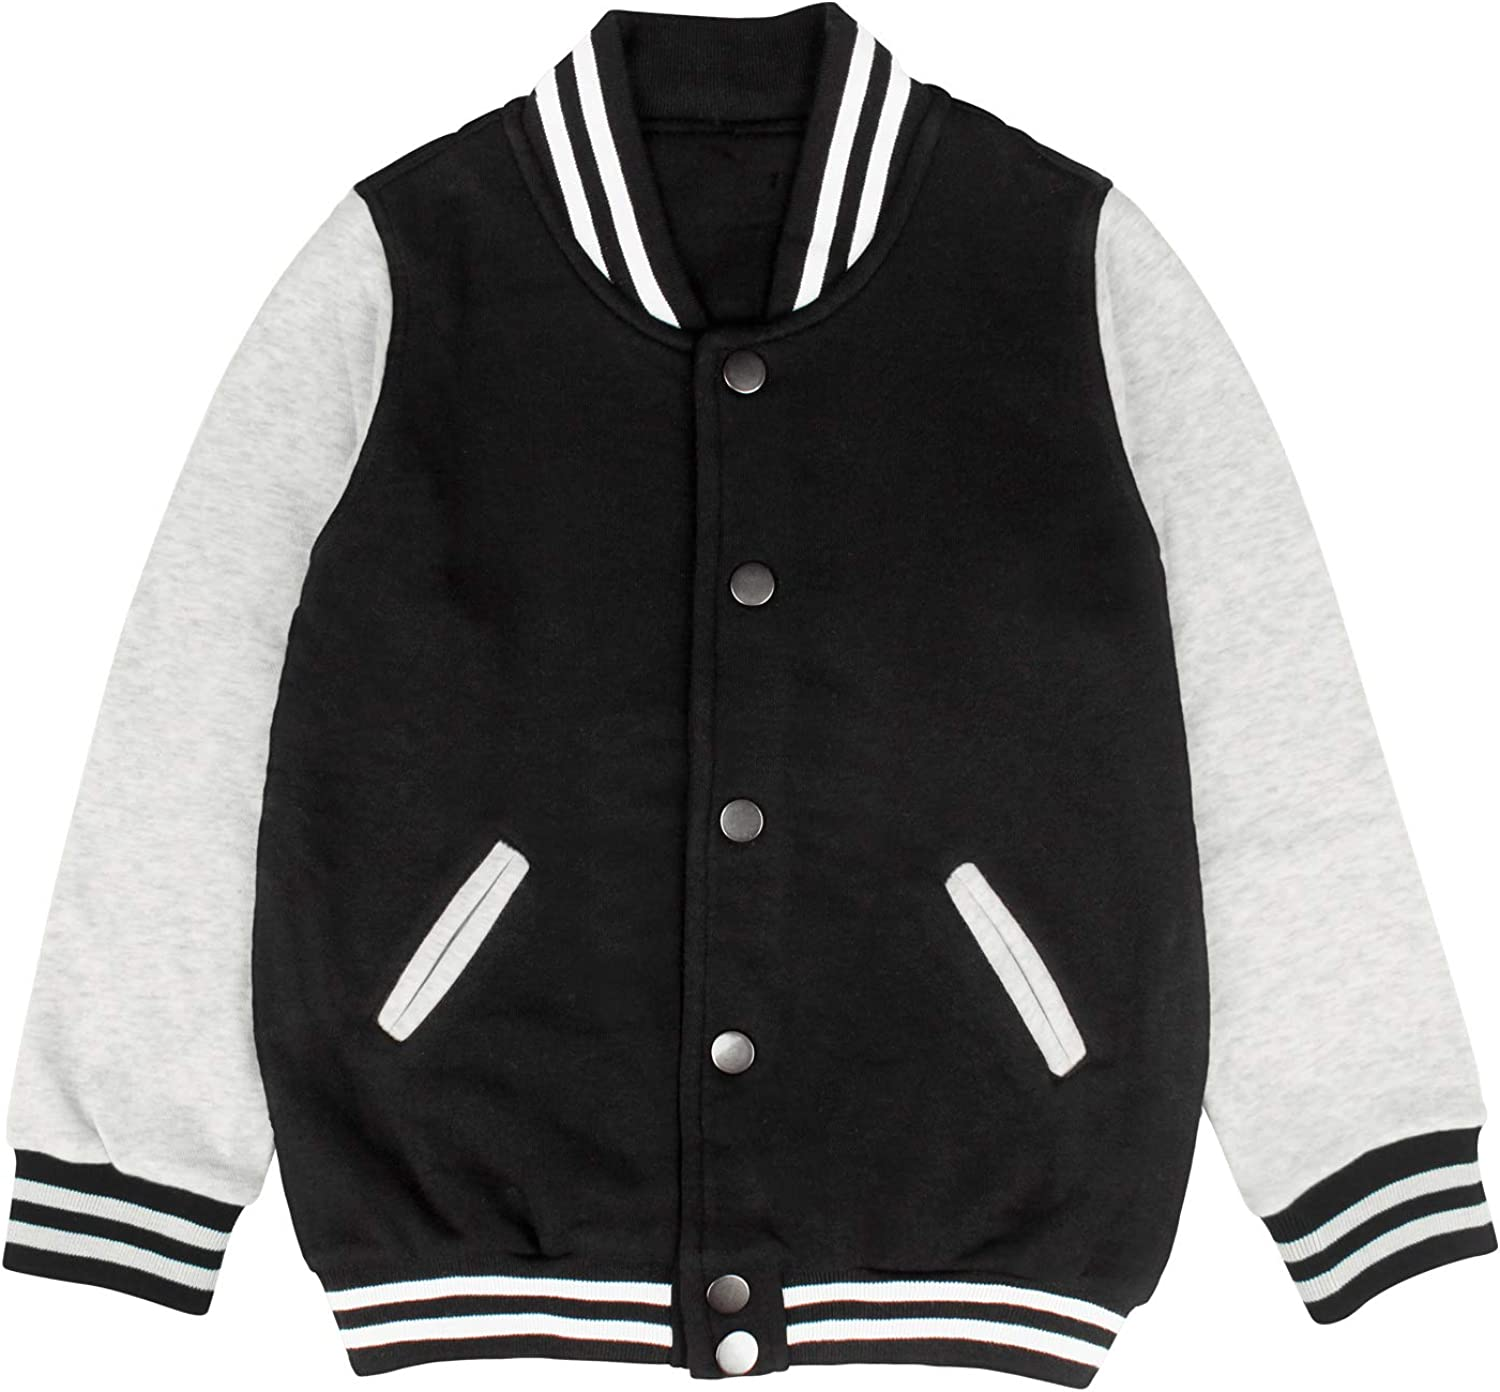 Boys Girls Varsity Letterman Jacket Rock Band Logo Design Baseball Cotton Sweatshirt Coat for Kids